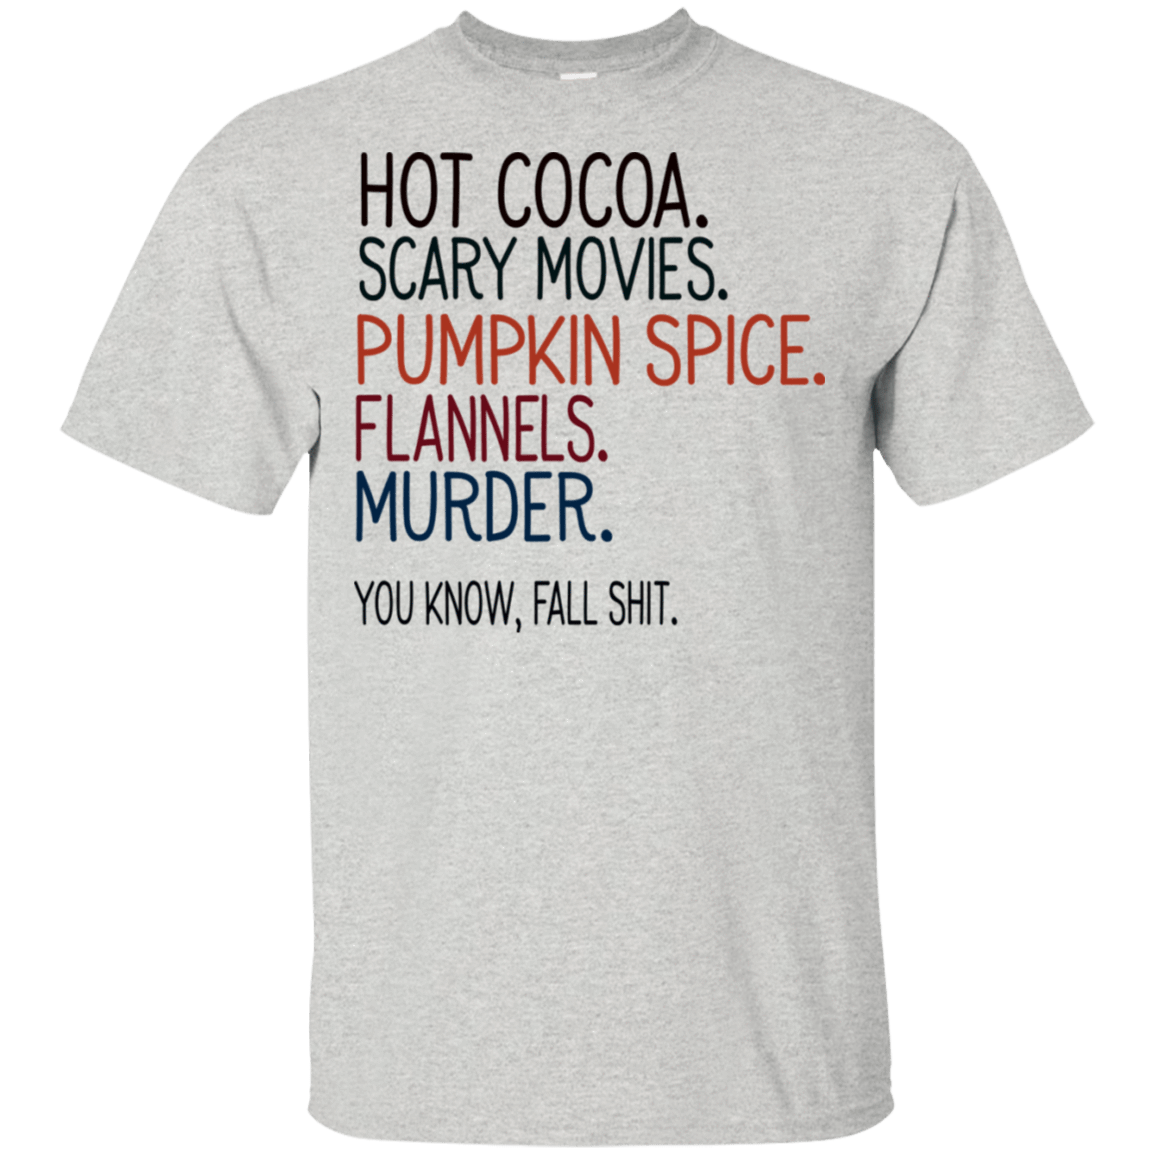 Hot Cocoa Scary Movies Pumpkin Spice Flannels Murder You Know Fall Shit T-Shirts, Hoodie, Tank 22-2475-78811043-12568 - Tee Ript